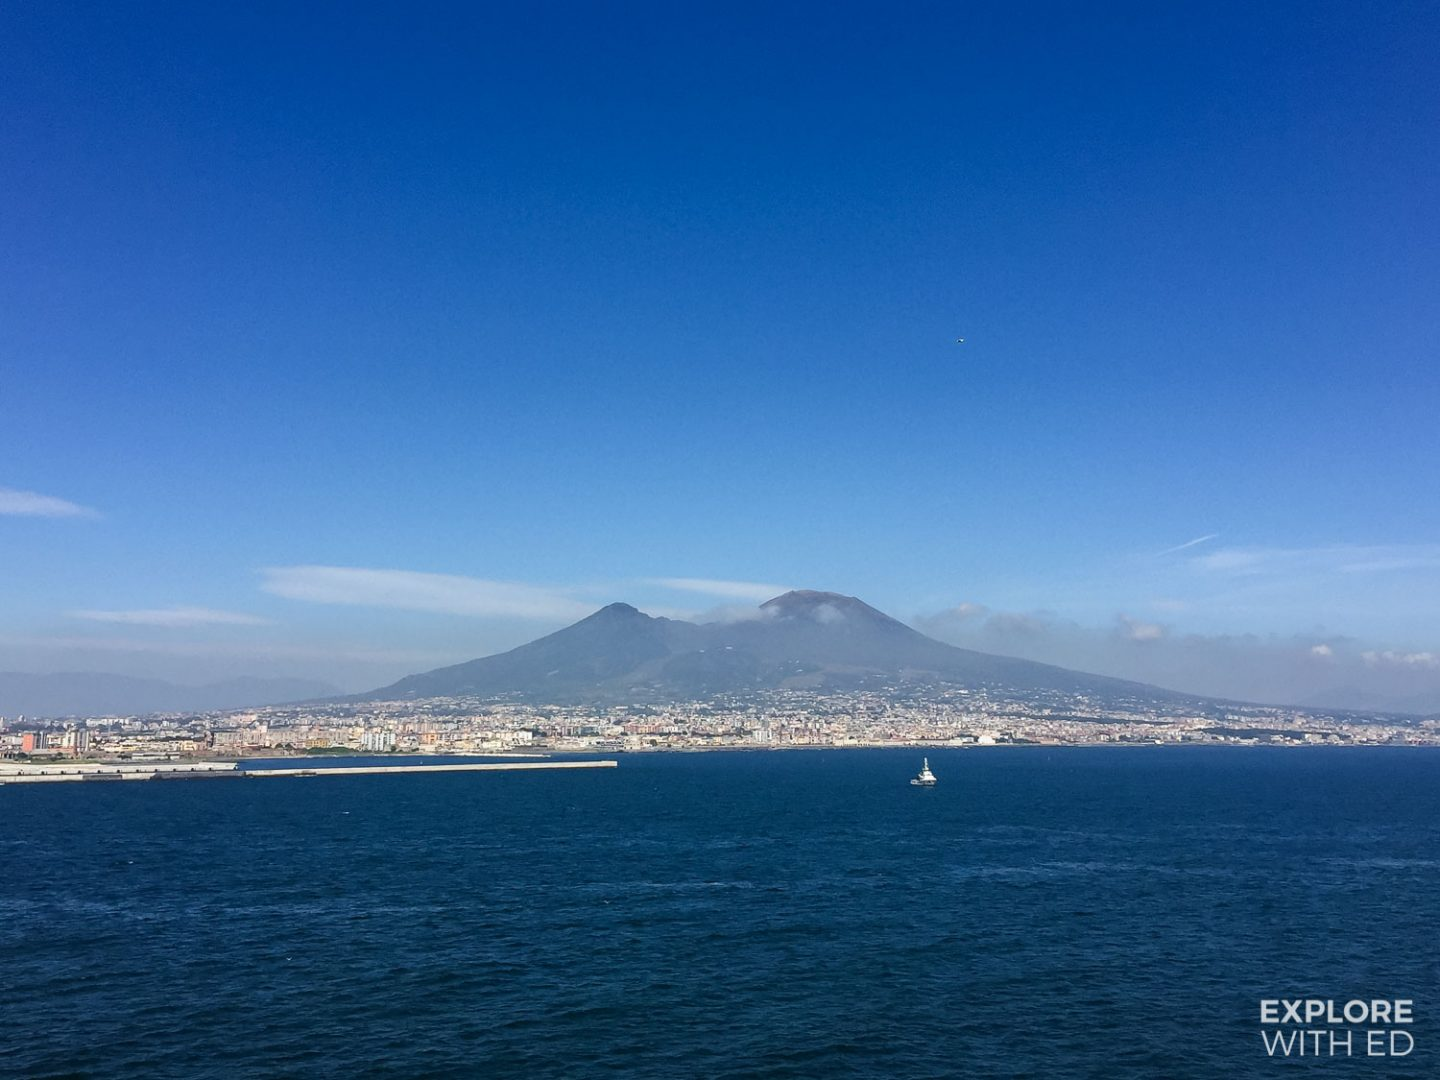 Approaching the port of Naples on a cruise ship with a view of Mount Vesuvius